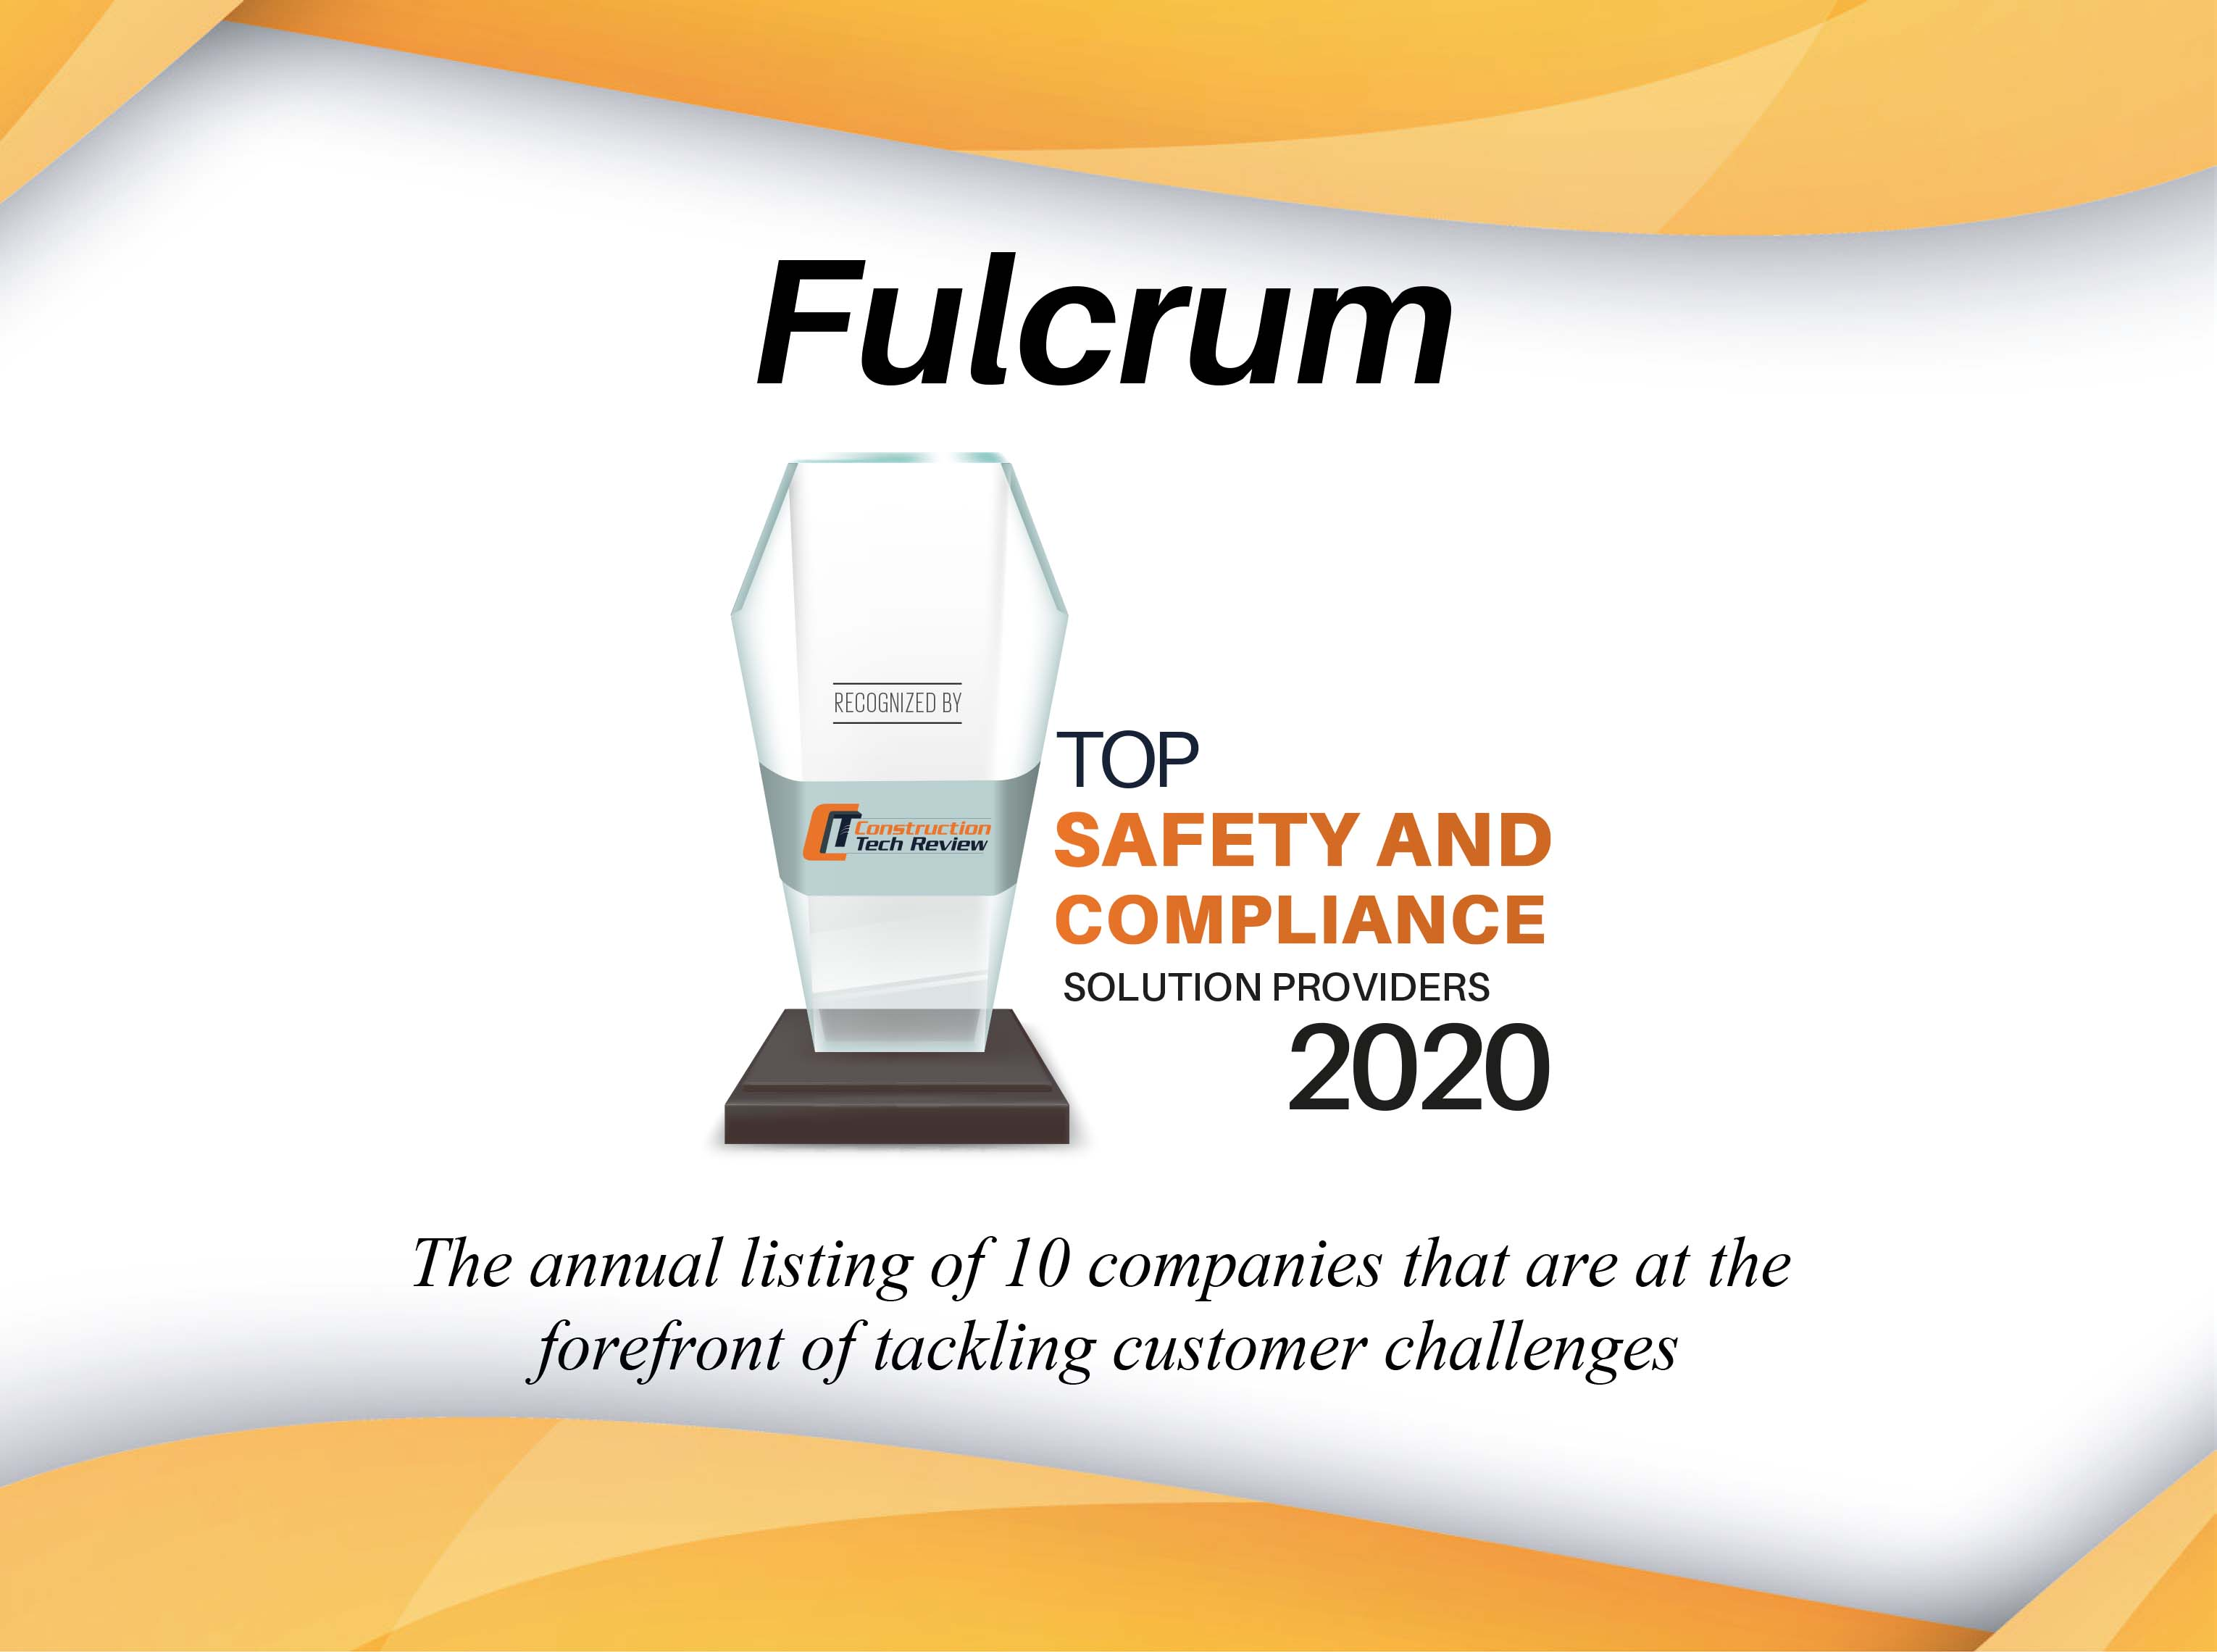 Top Safety and Compliance Solution Providers - Fulcrum